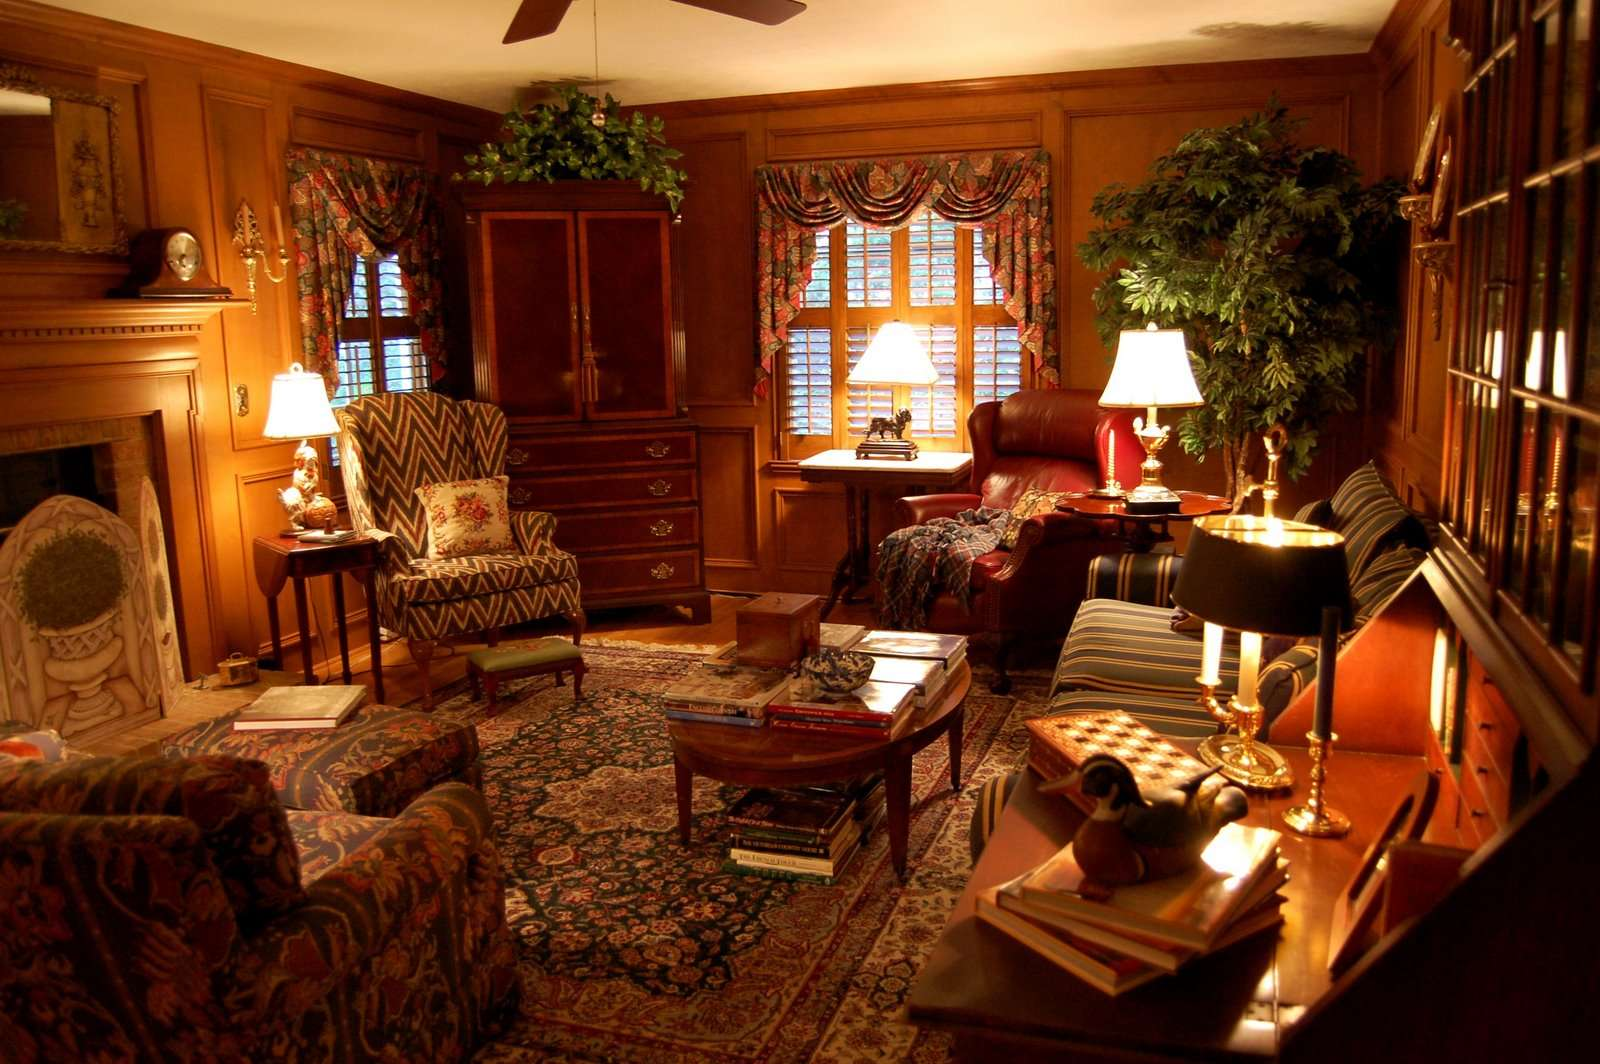 Another Country Living Room Ideas